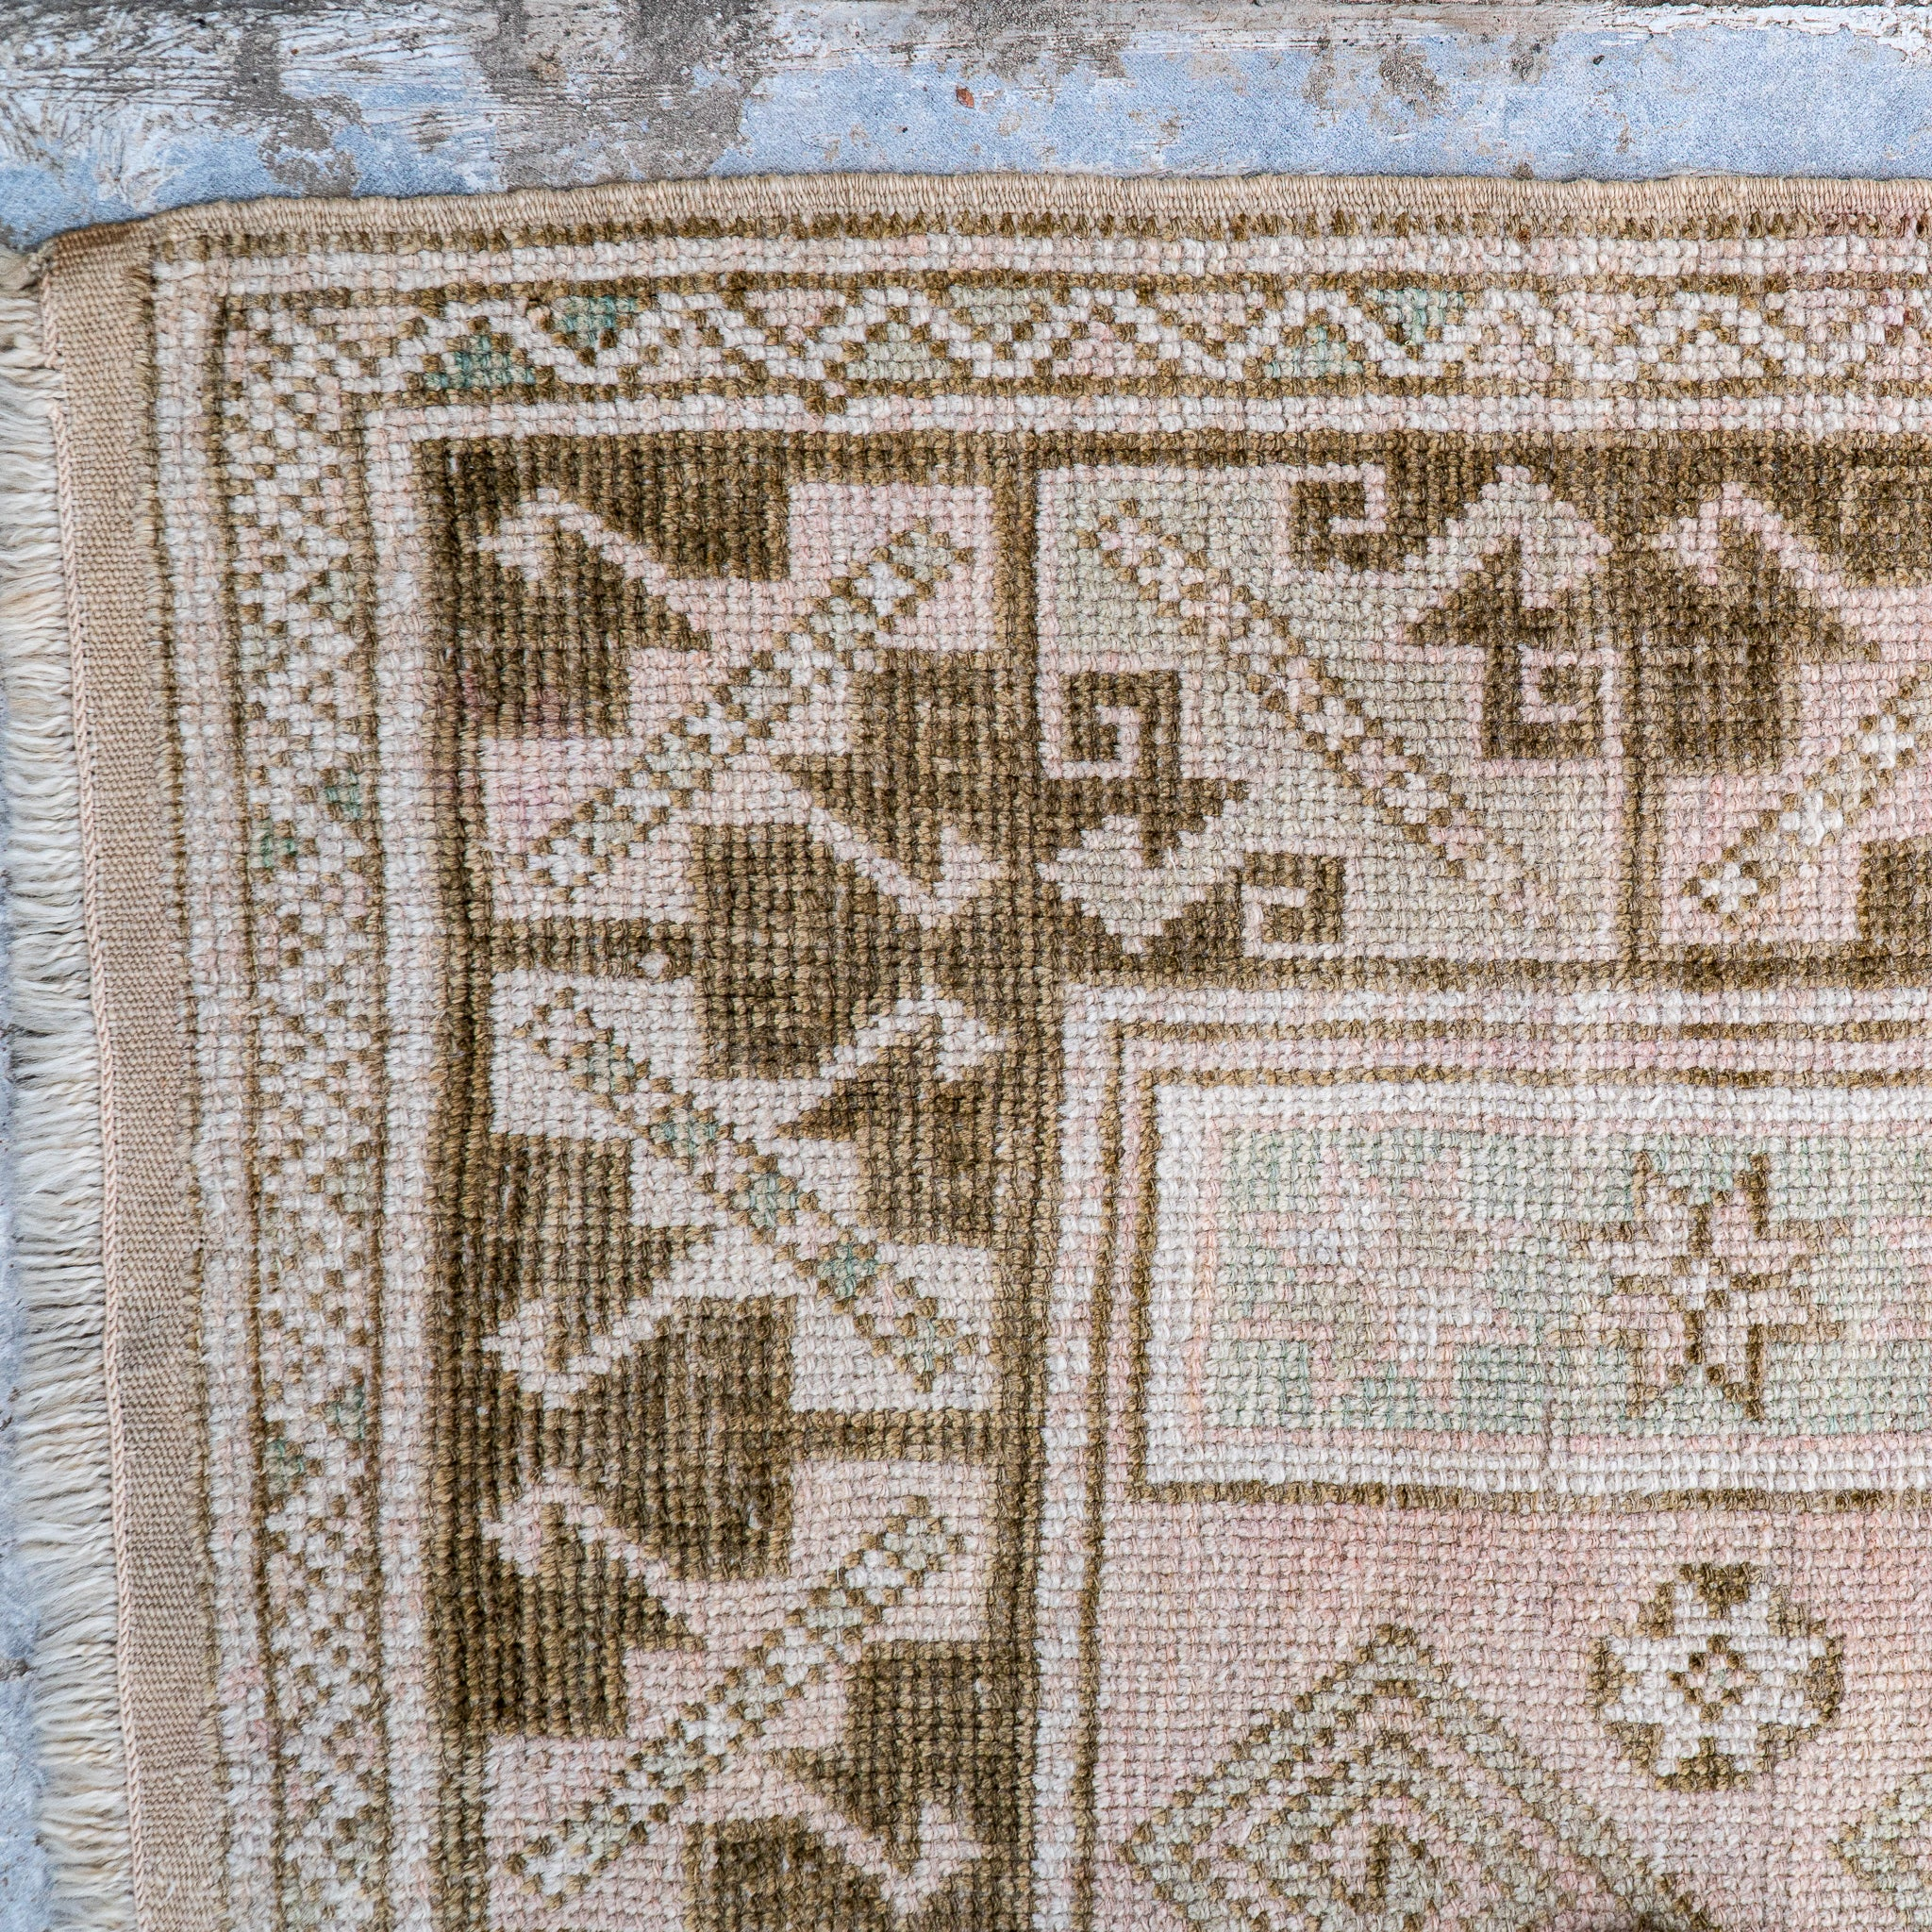 ON HOLD NOT AVAILABLE FOR PURCHASE 2755 Handwoven Vintage Rug 3'11x6'5